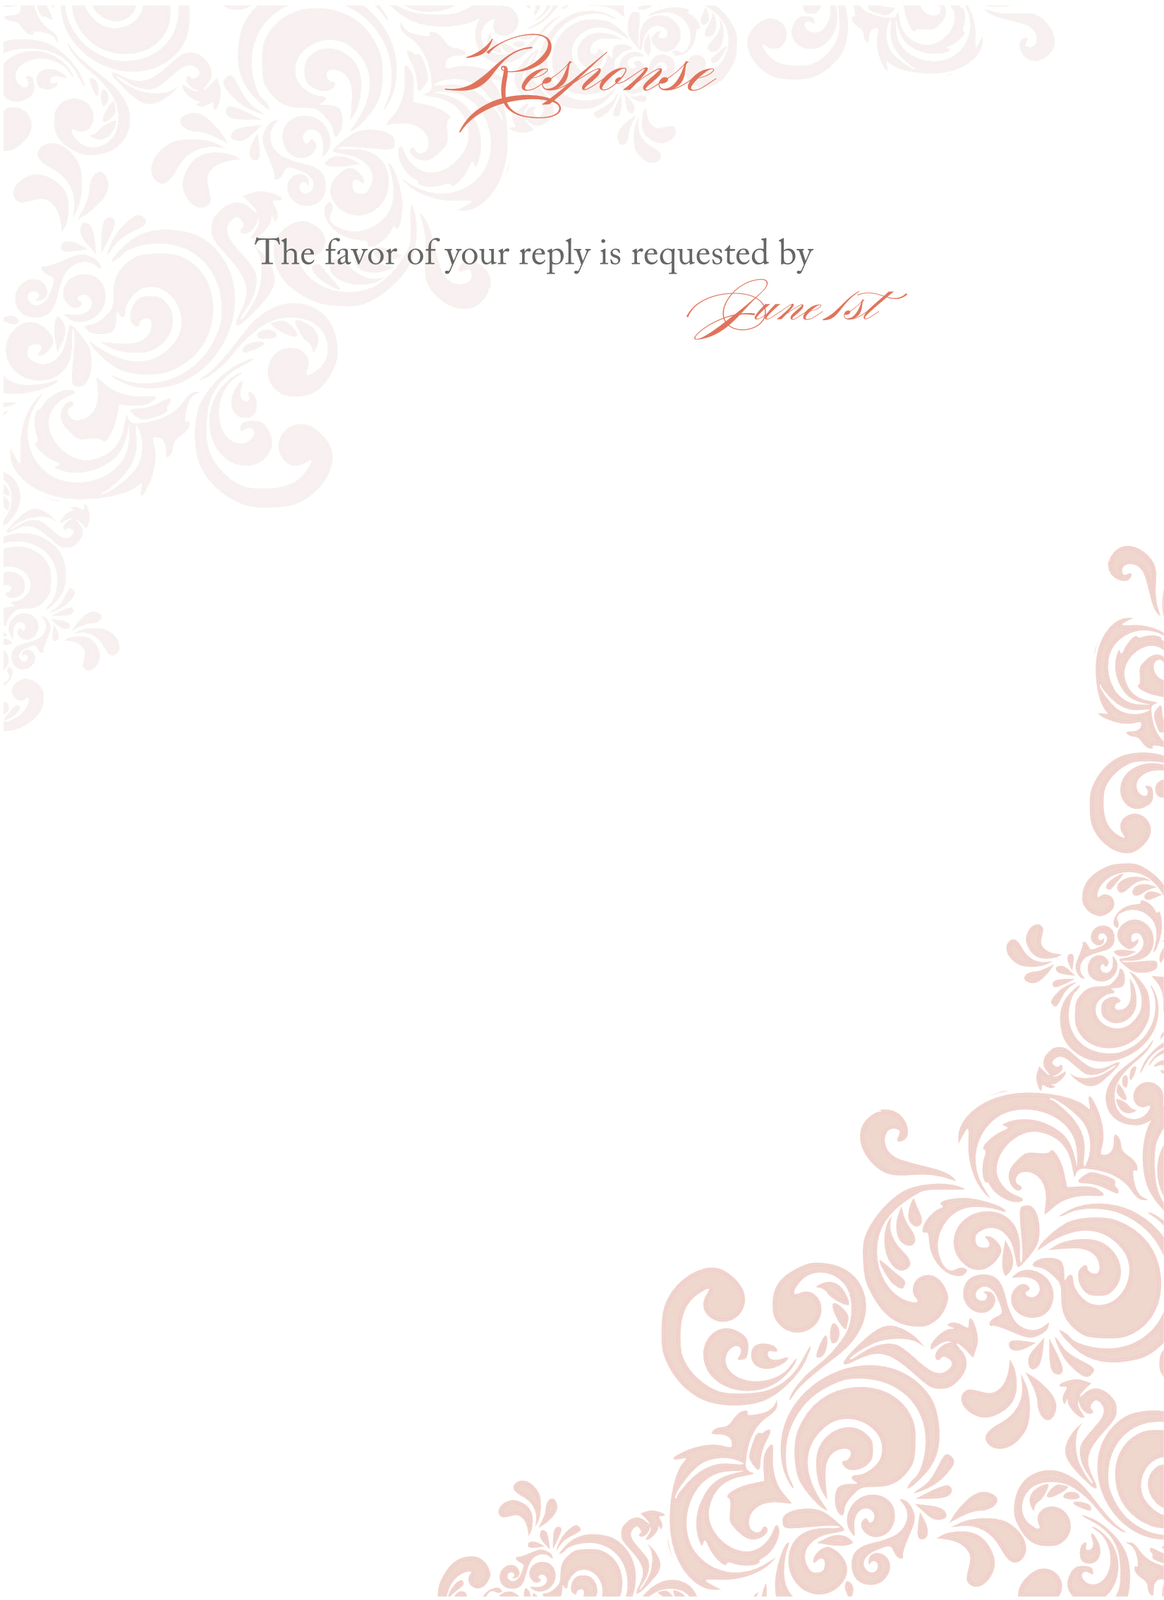 floral blank wedding invitation templates With wedding invitations layout blank